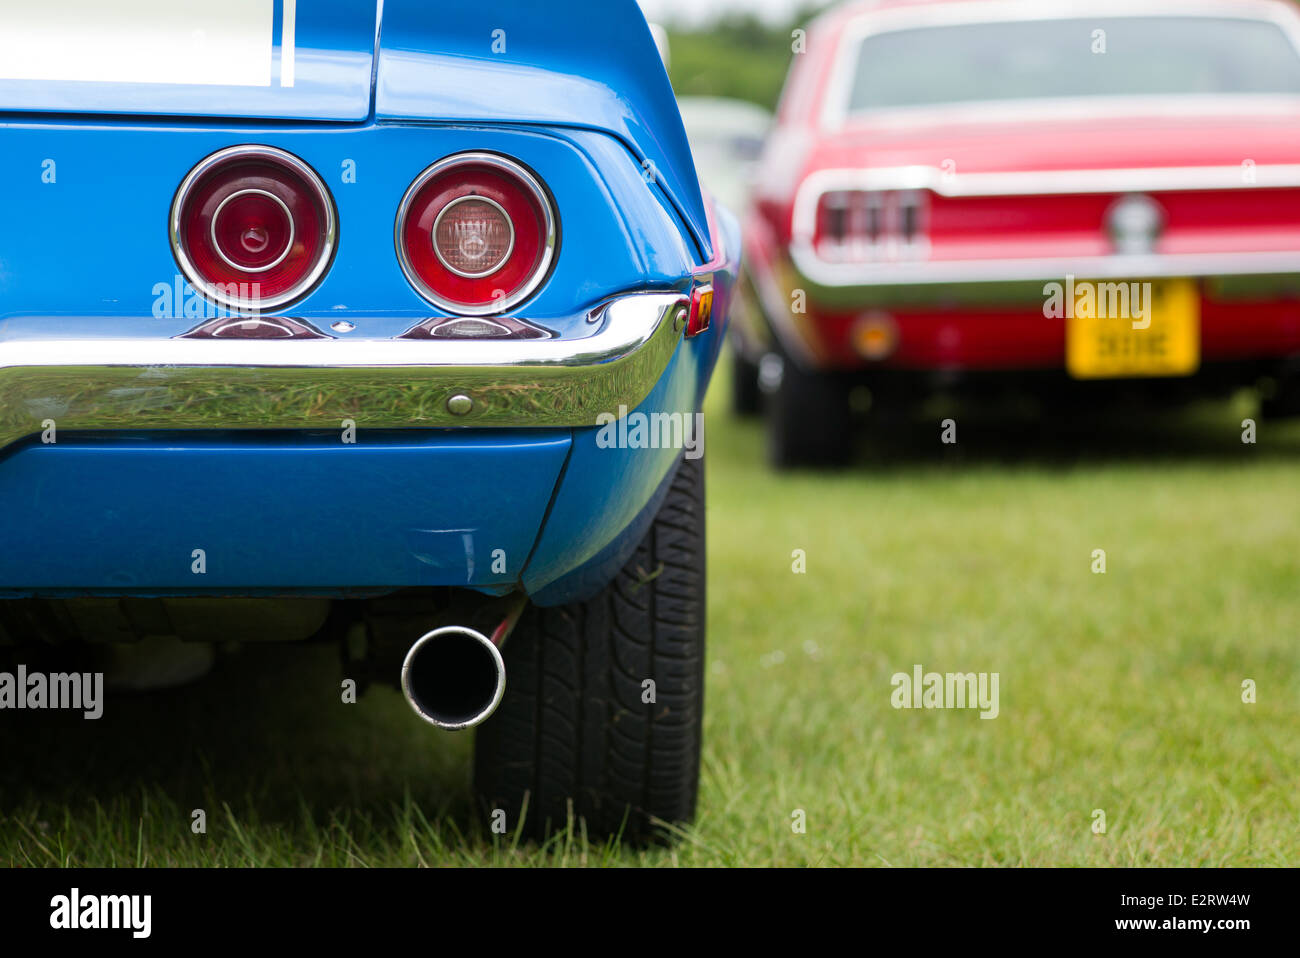 Chevrolet Camaro Rear End Abstract Classic American Cars Stock